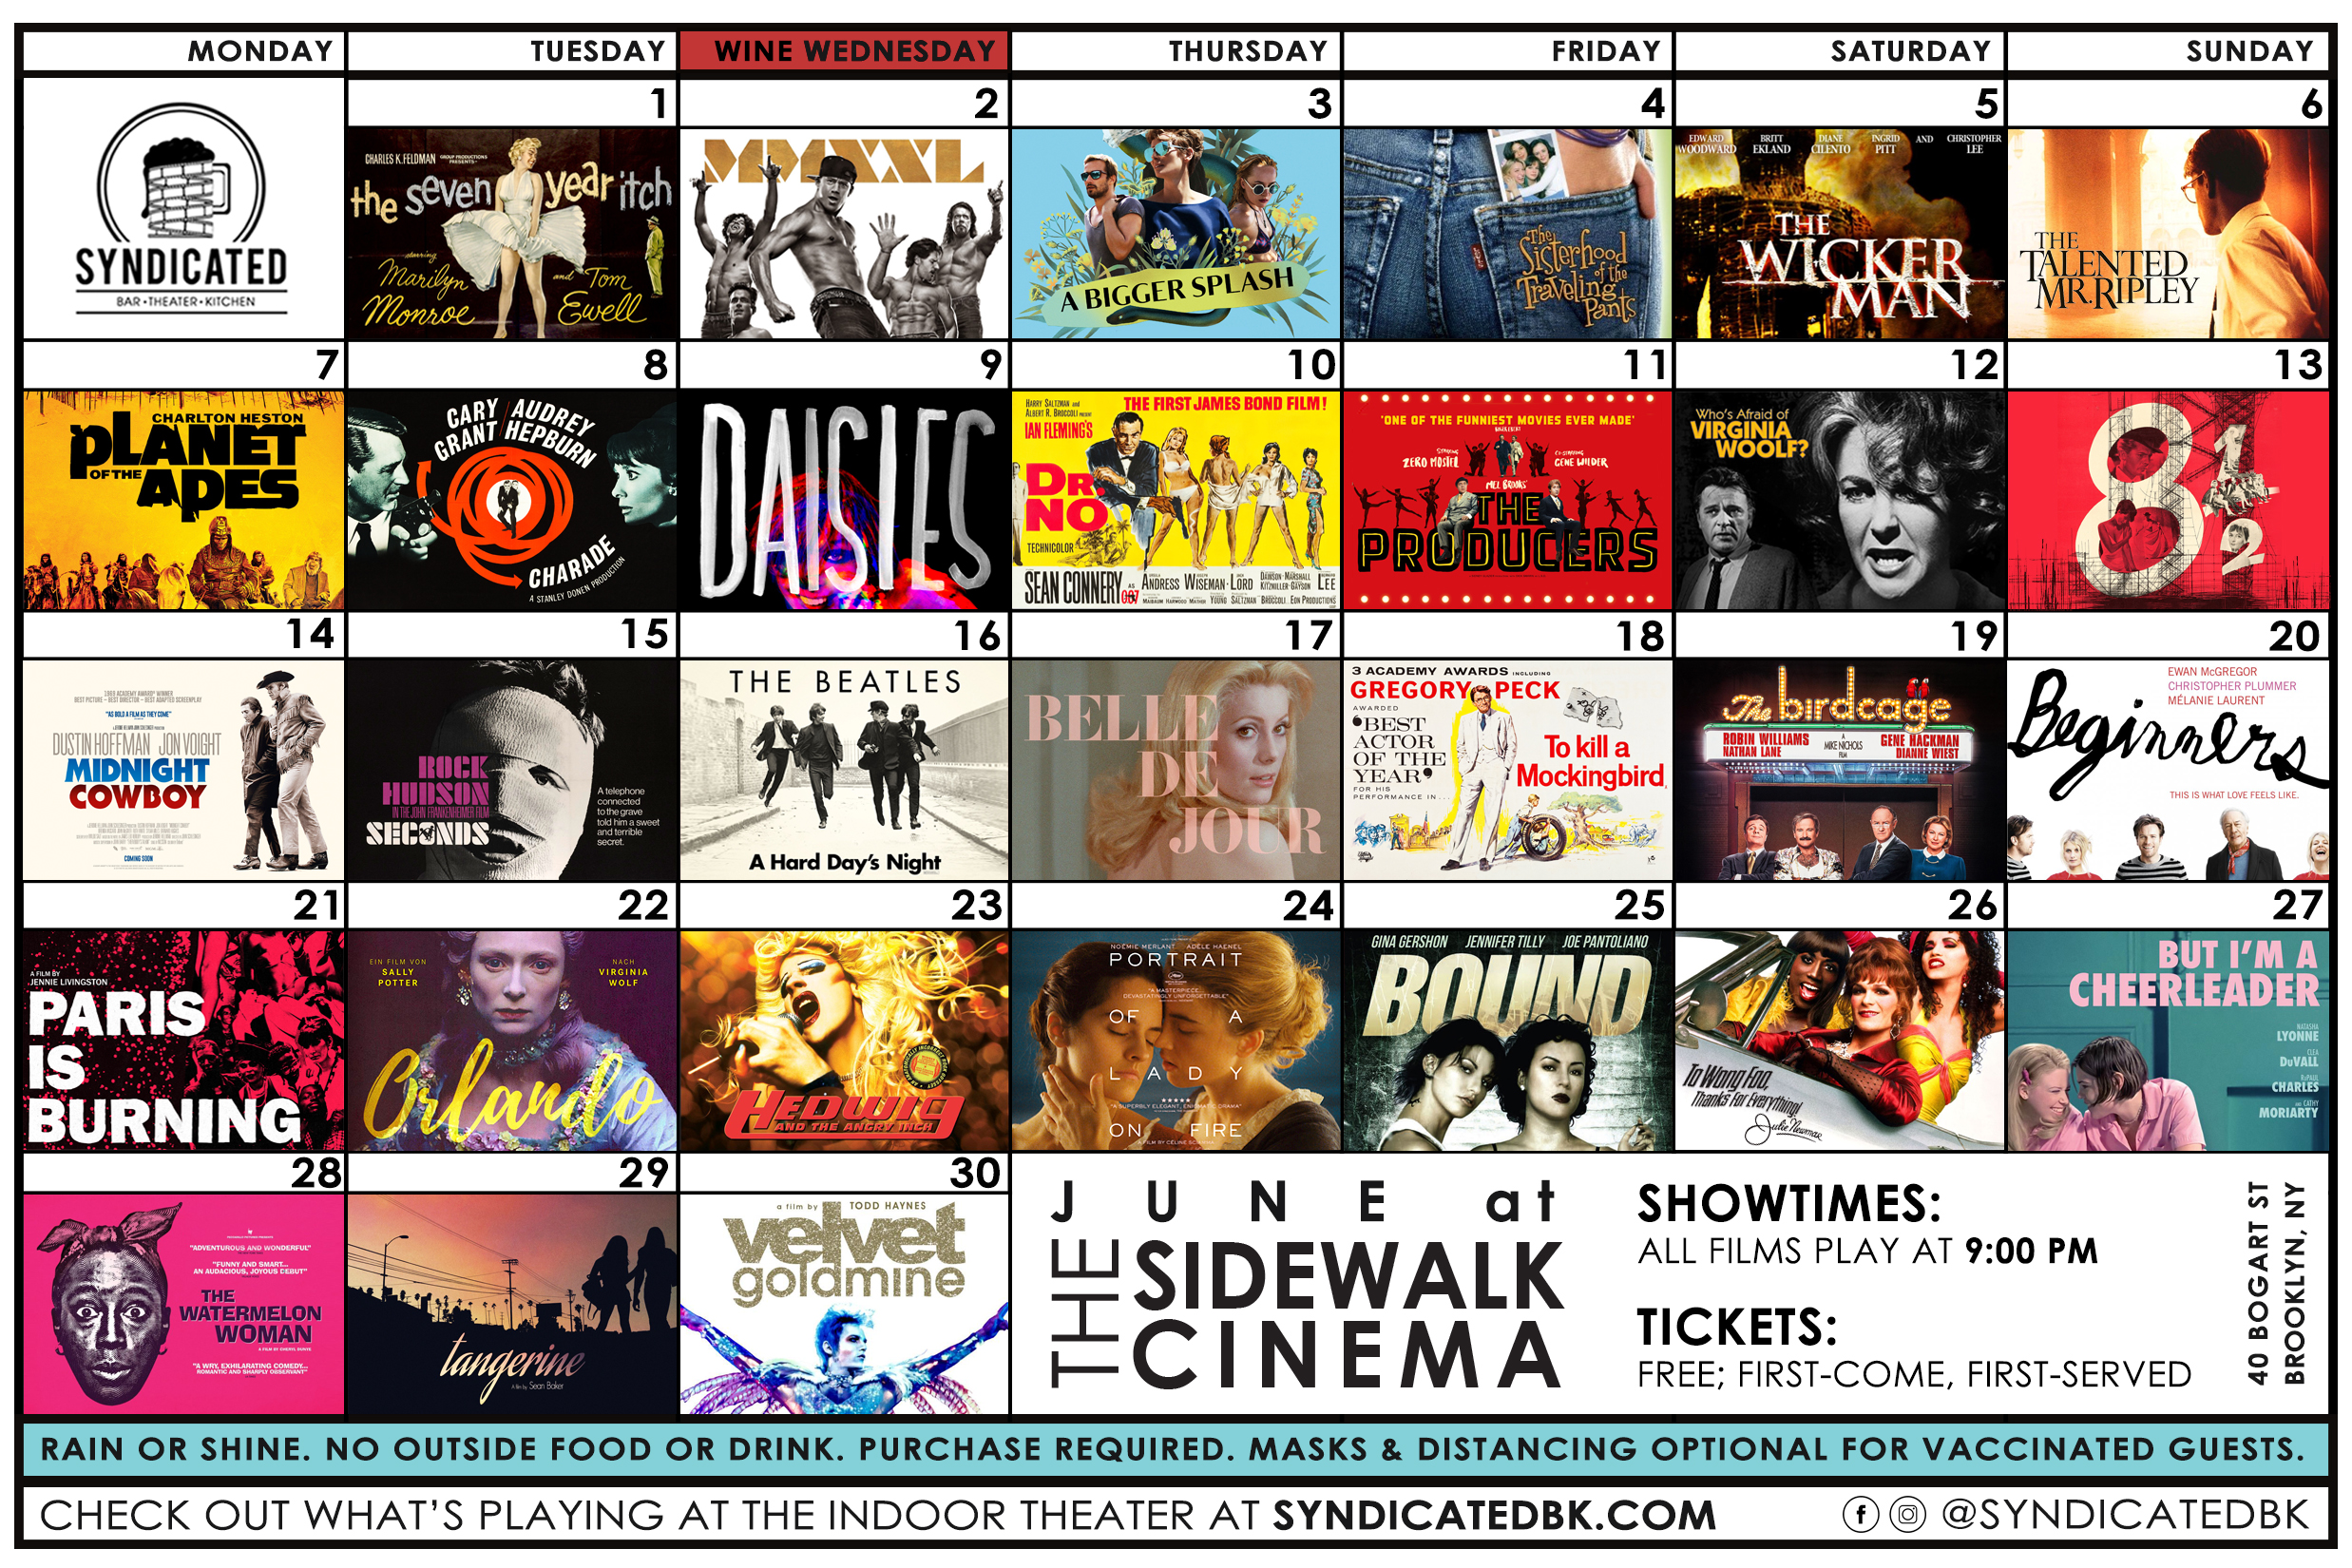 June Sidewalk Cinema Schedule | June 1st – The Seven Year Itch | 2nd – Magic Mike XXL | 3rd – A Bigger Splash | 4th – The Sisterhood of the Traveling Pants | 5th – The Wicker Man (1973) | 6th – The Talented Mr. Ripley | 7th – Planet of the Apes (1968) | 8th – Charade | 9th – Daisies | 10th – Dr. No | 11th – The Producers (1967) | 12th – Who's Afraid of Virginia Woolf? | 13th – 8½ | 14th – Midnight Cowboy | 15th – Seconds | 16th – A Hard Day's Night | 17th – Belle du Jour | 18th – To Kill a Mockingbird | 19th – The Birdcage | 20th – Beginners | 21st – Paris Is Burning | 22nd – Orlando | 23rd – Hedwig and the Angry Inch | 24th – Portrait of a Lady on Fire | 25th – Bound | 26th – To Wong Foo, Thanks for Everything, Julie Newmar | 27th – But I'm a Cheerleader | 28th – The Watermelon Woman | 29th – Tangerine | 30th – Velvet Goldmine